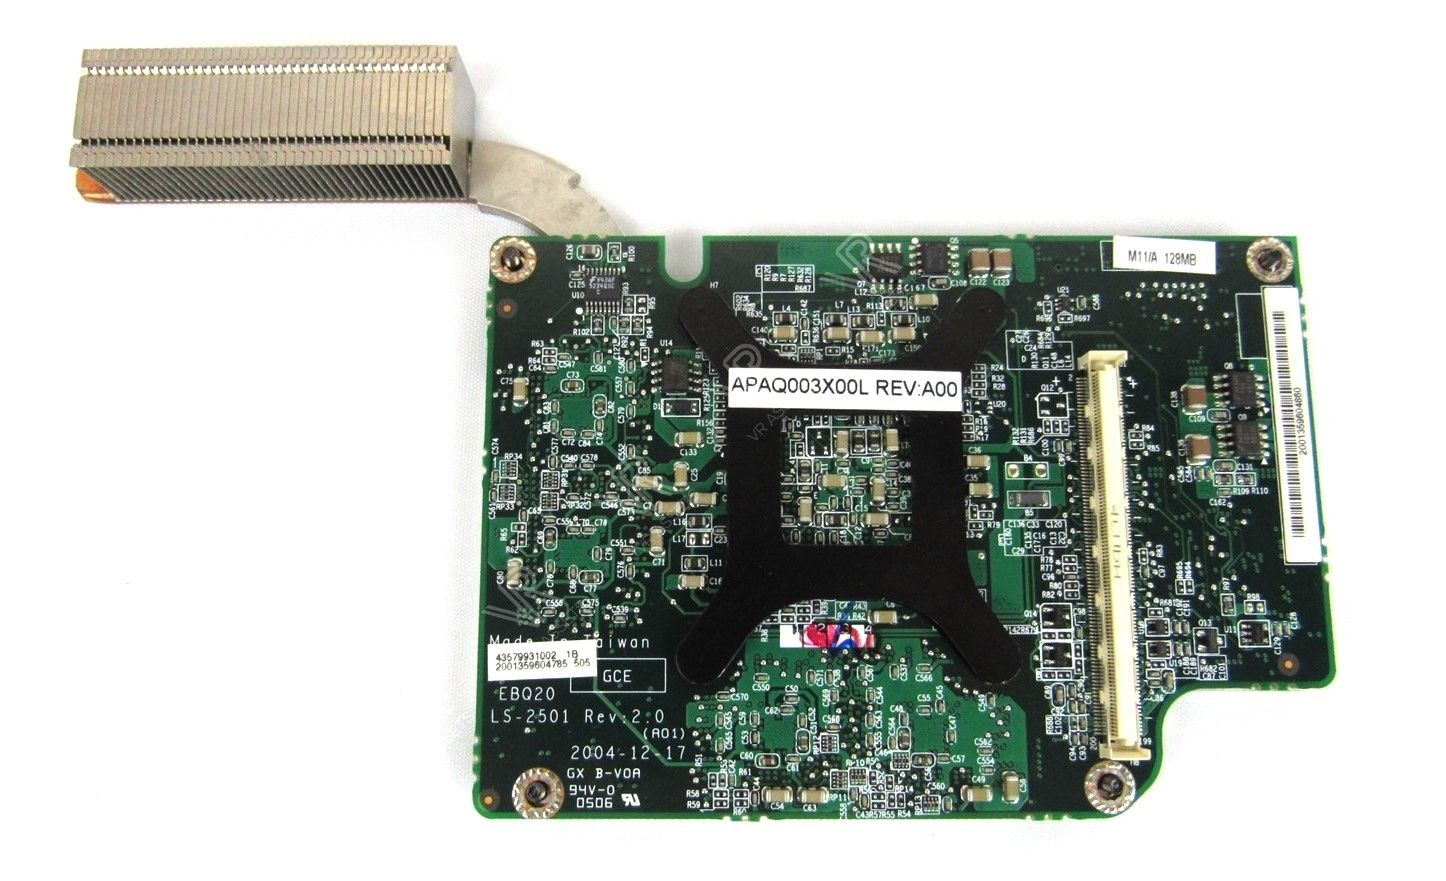 Dell Inspiron 9200 128MB ATI 9700 Laptop Video Card with Heatsink G7354 0G7354